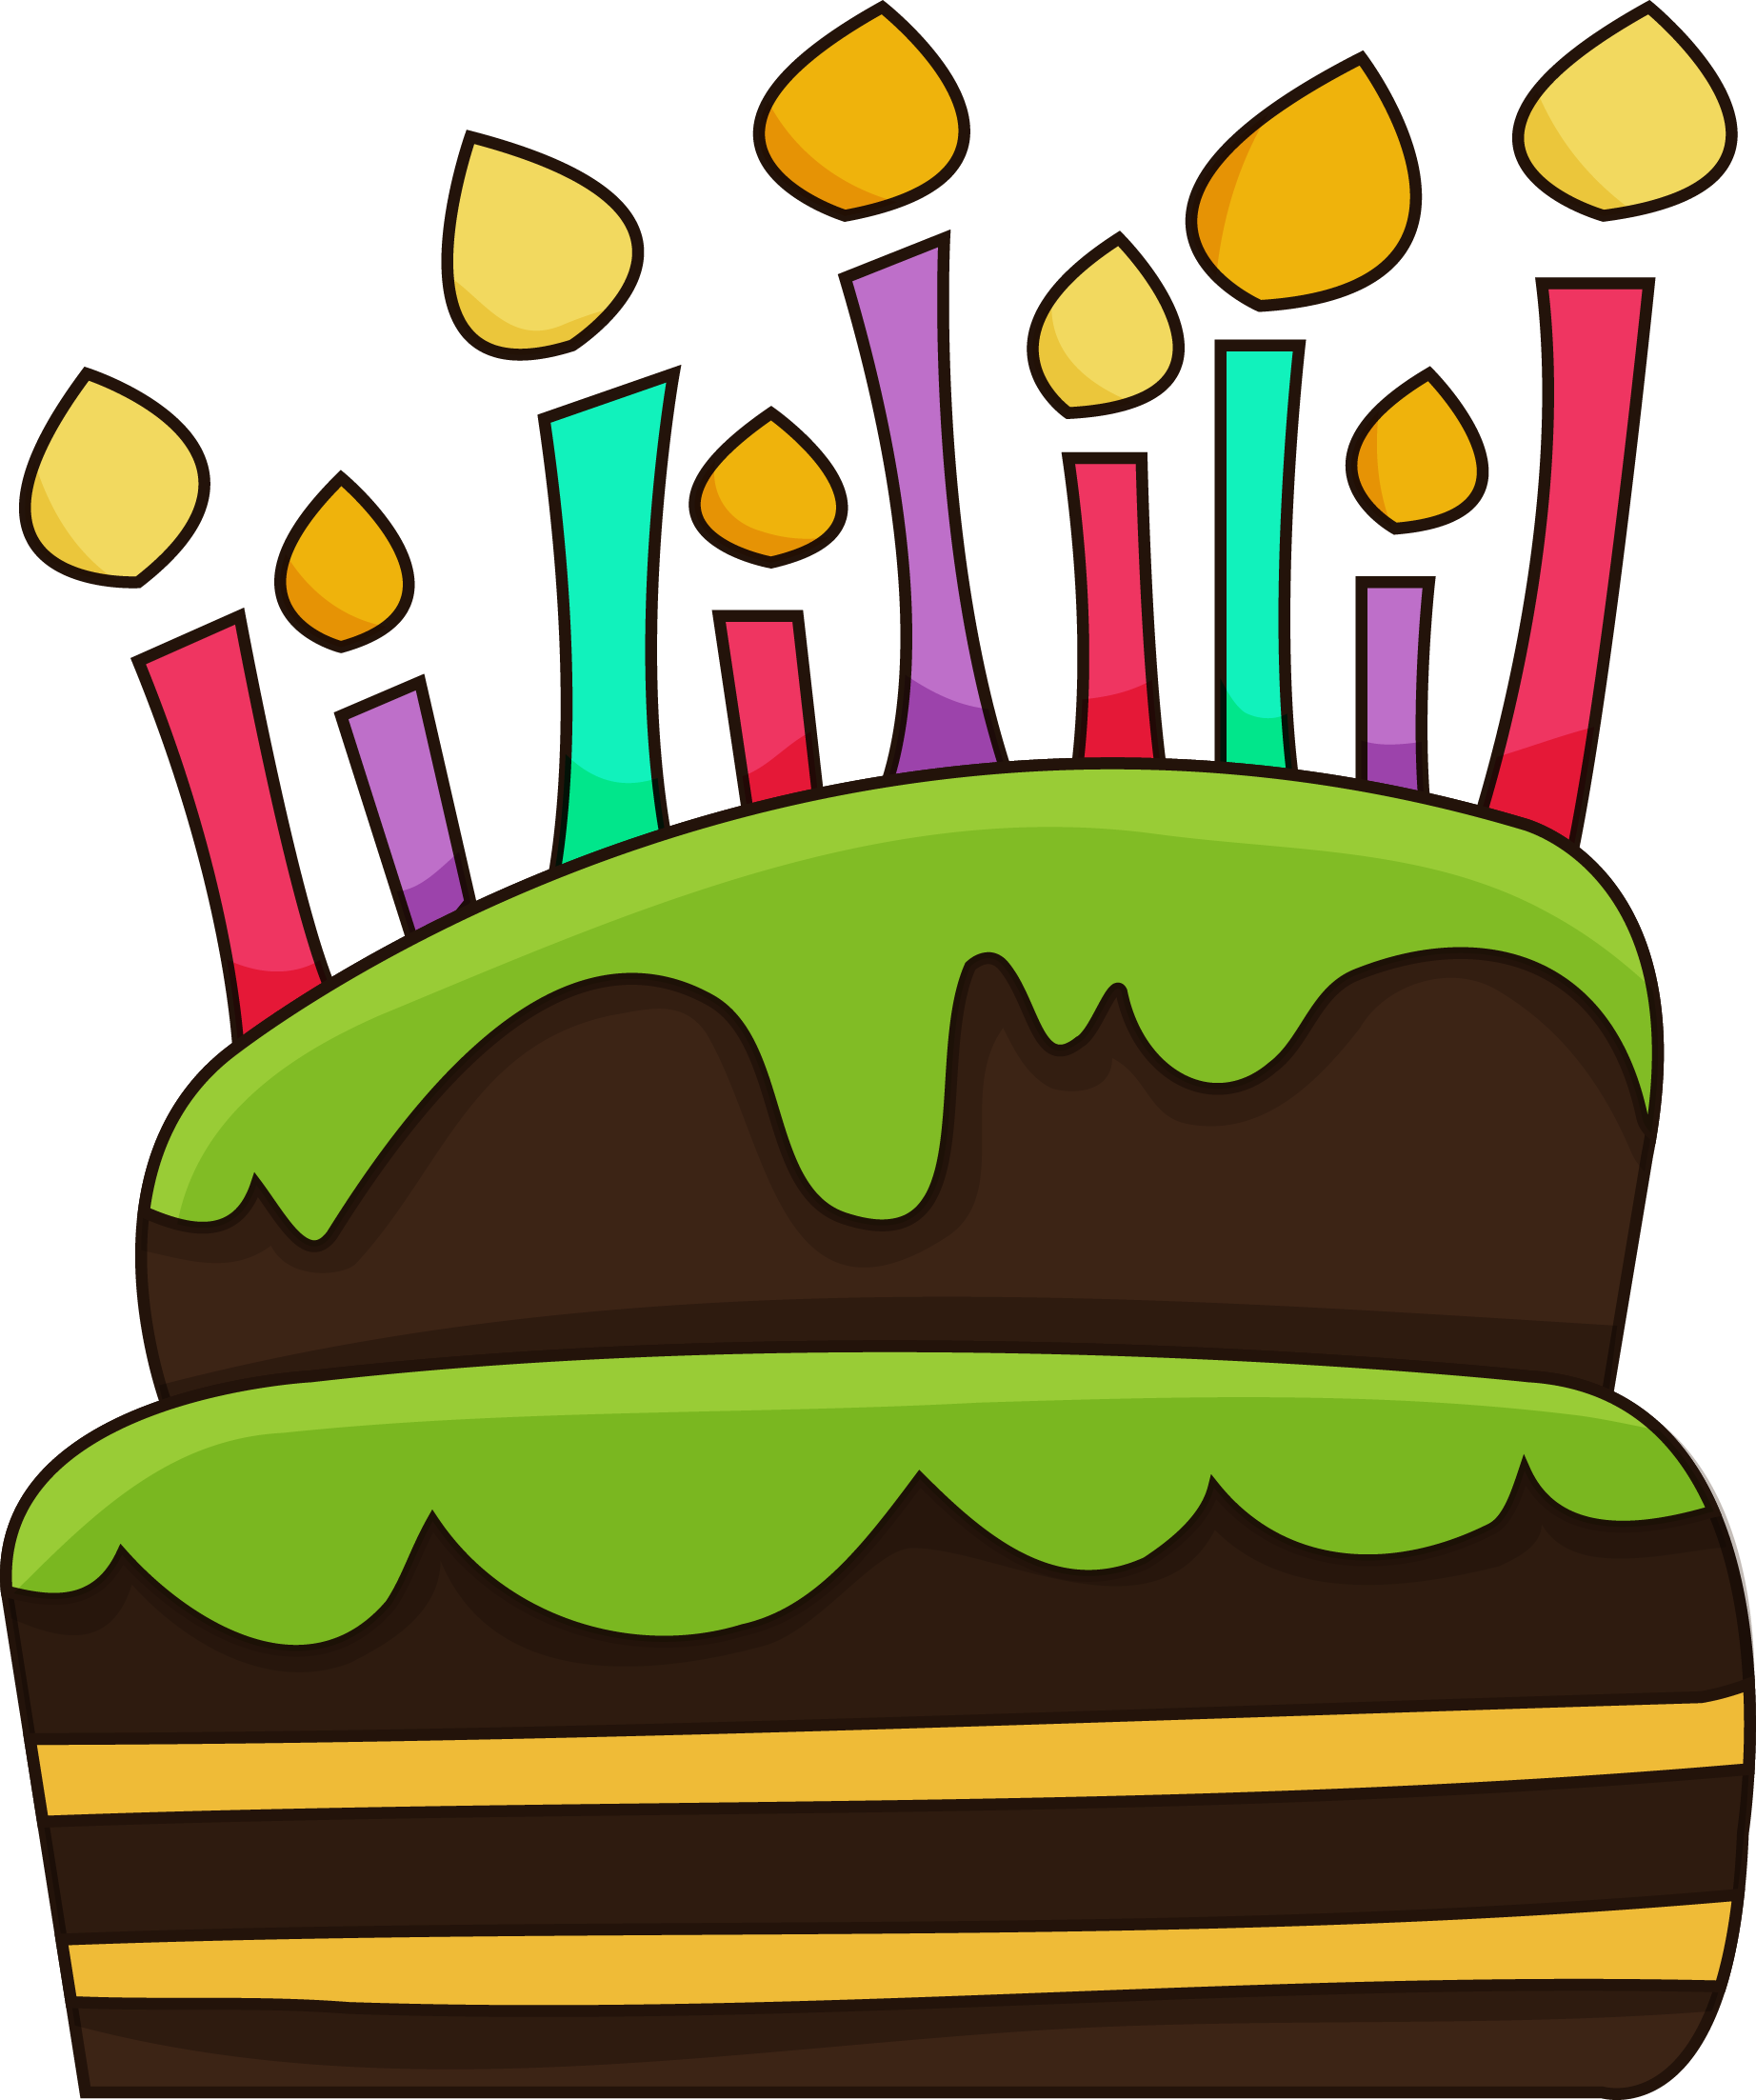 Cake Drawing Clip Art : Drawings For Birthday CAkes - ClipArt Best